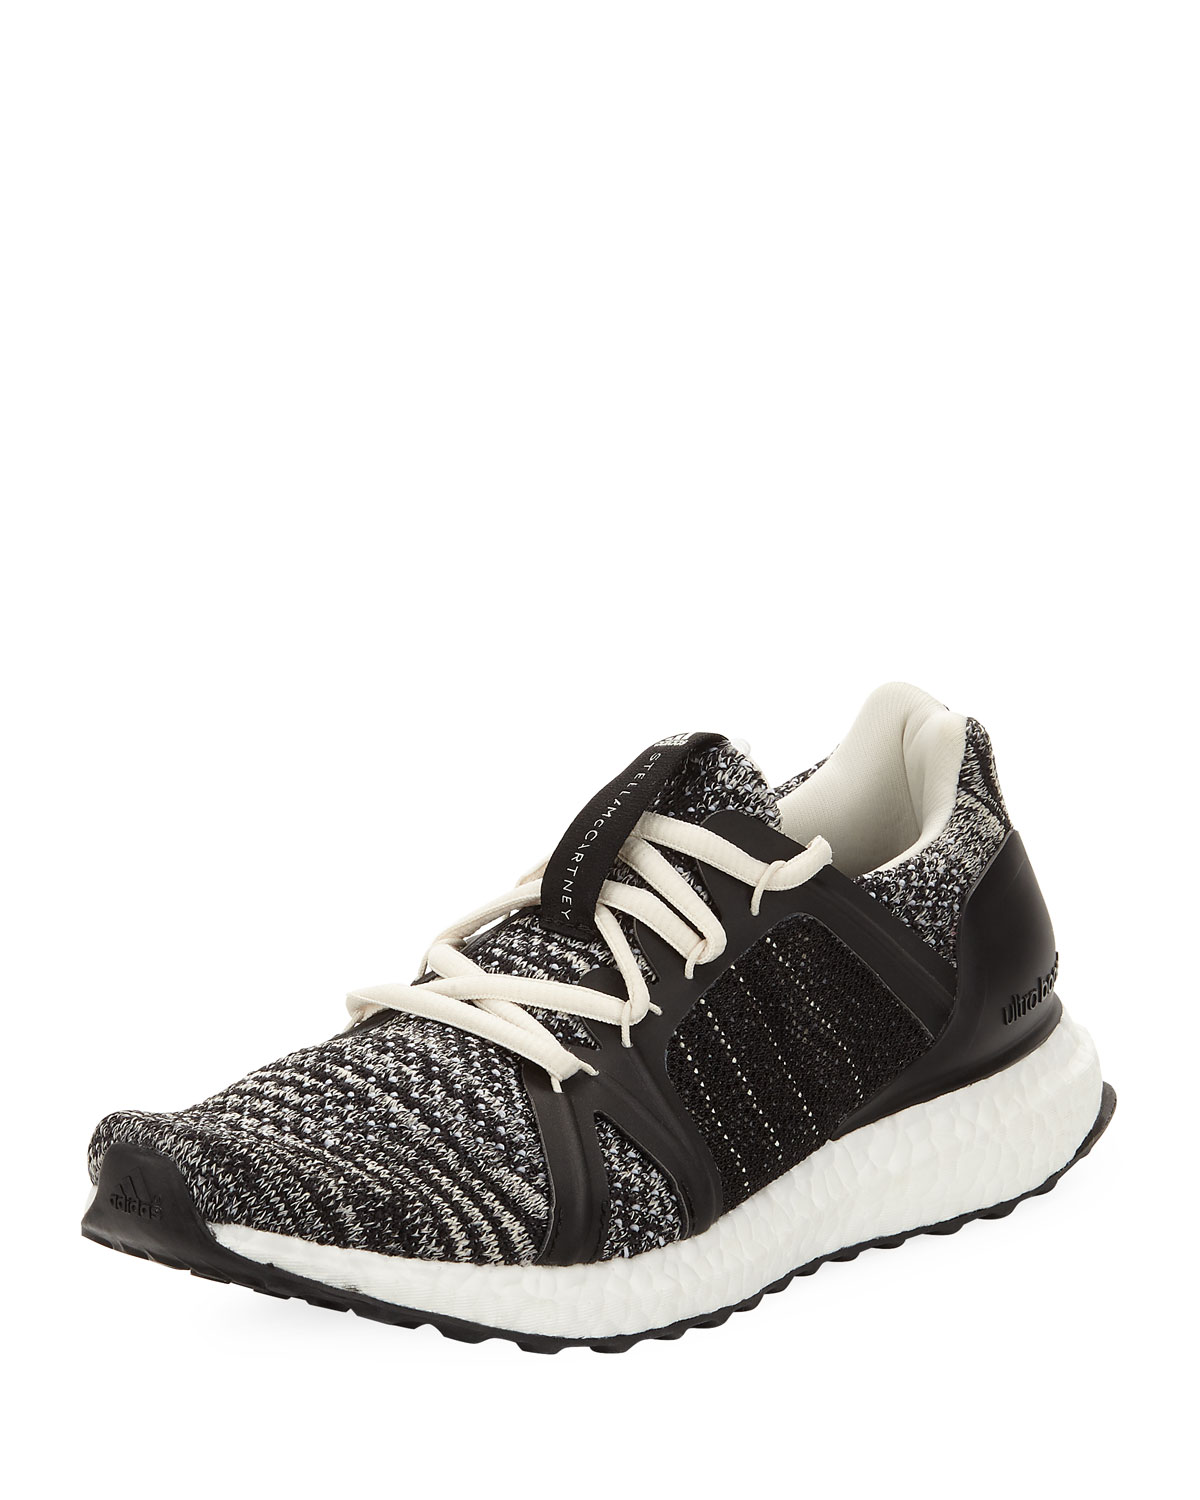 adidas by Stella McCartney Ultra Boost Parley Knit Trainer Sneakers ... 5e93aafae